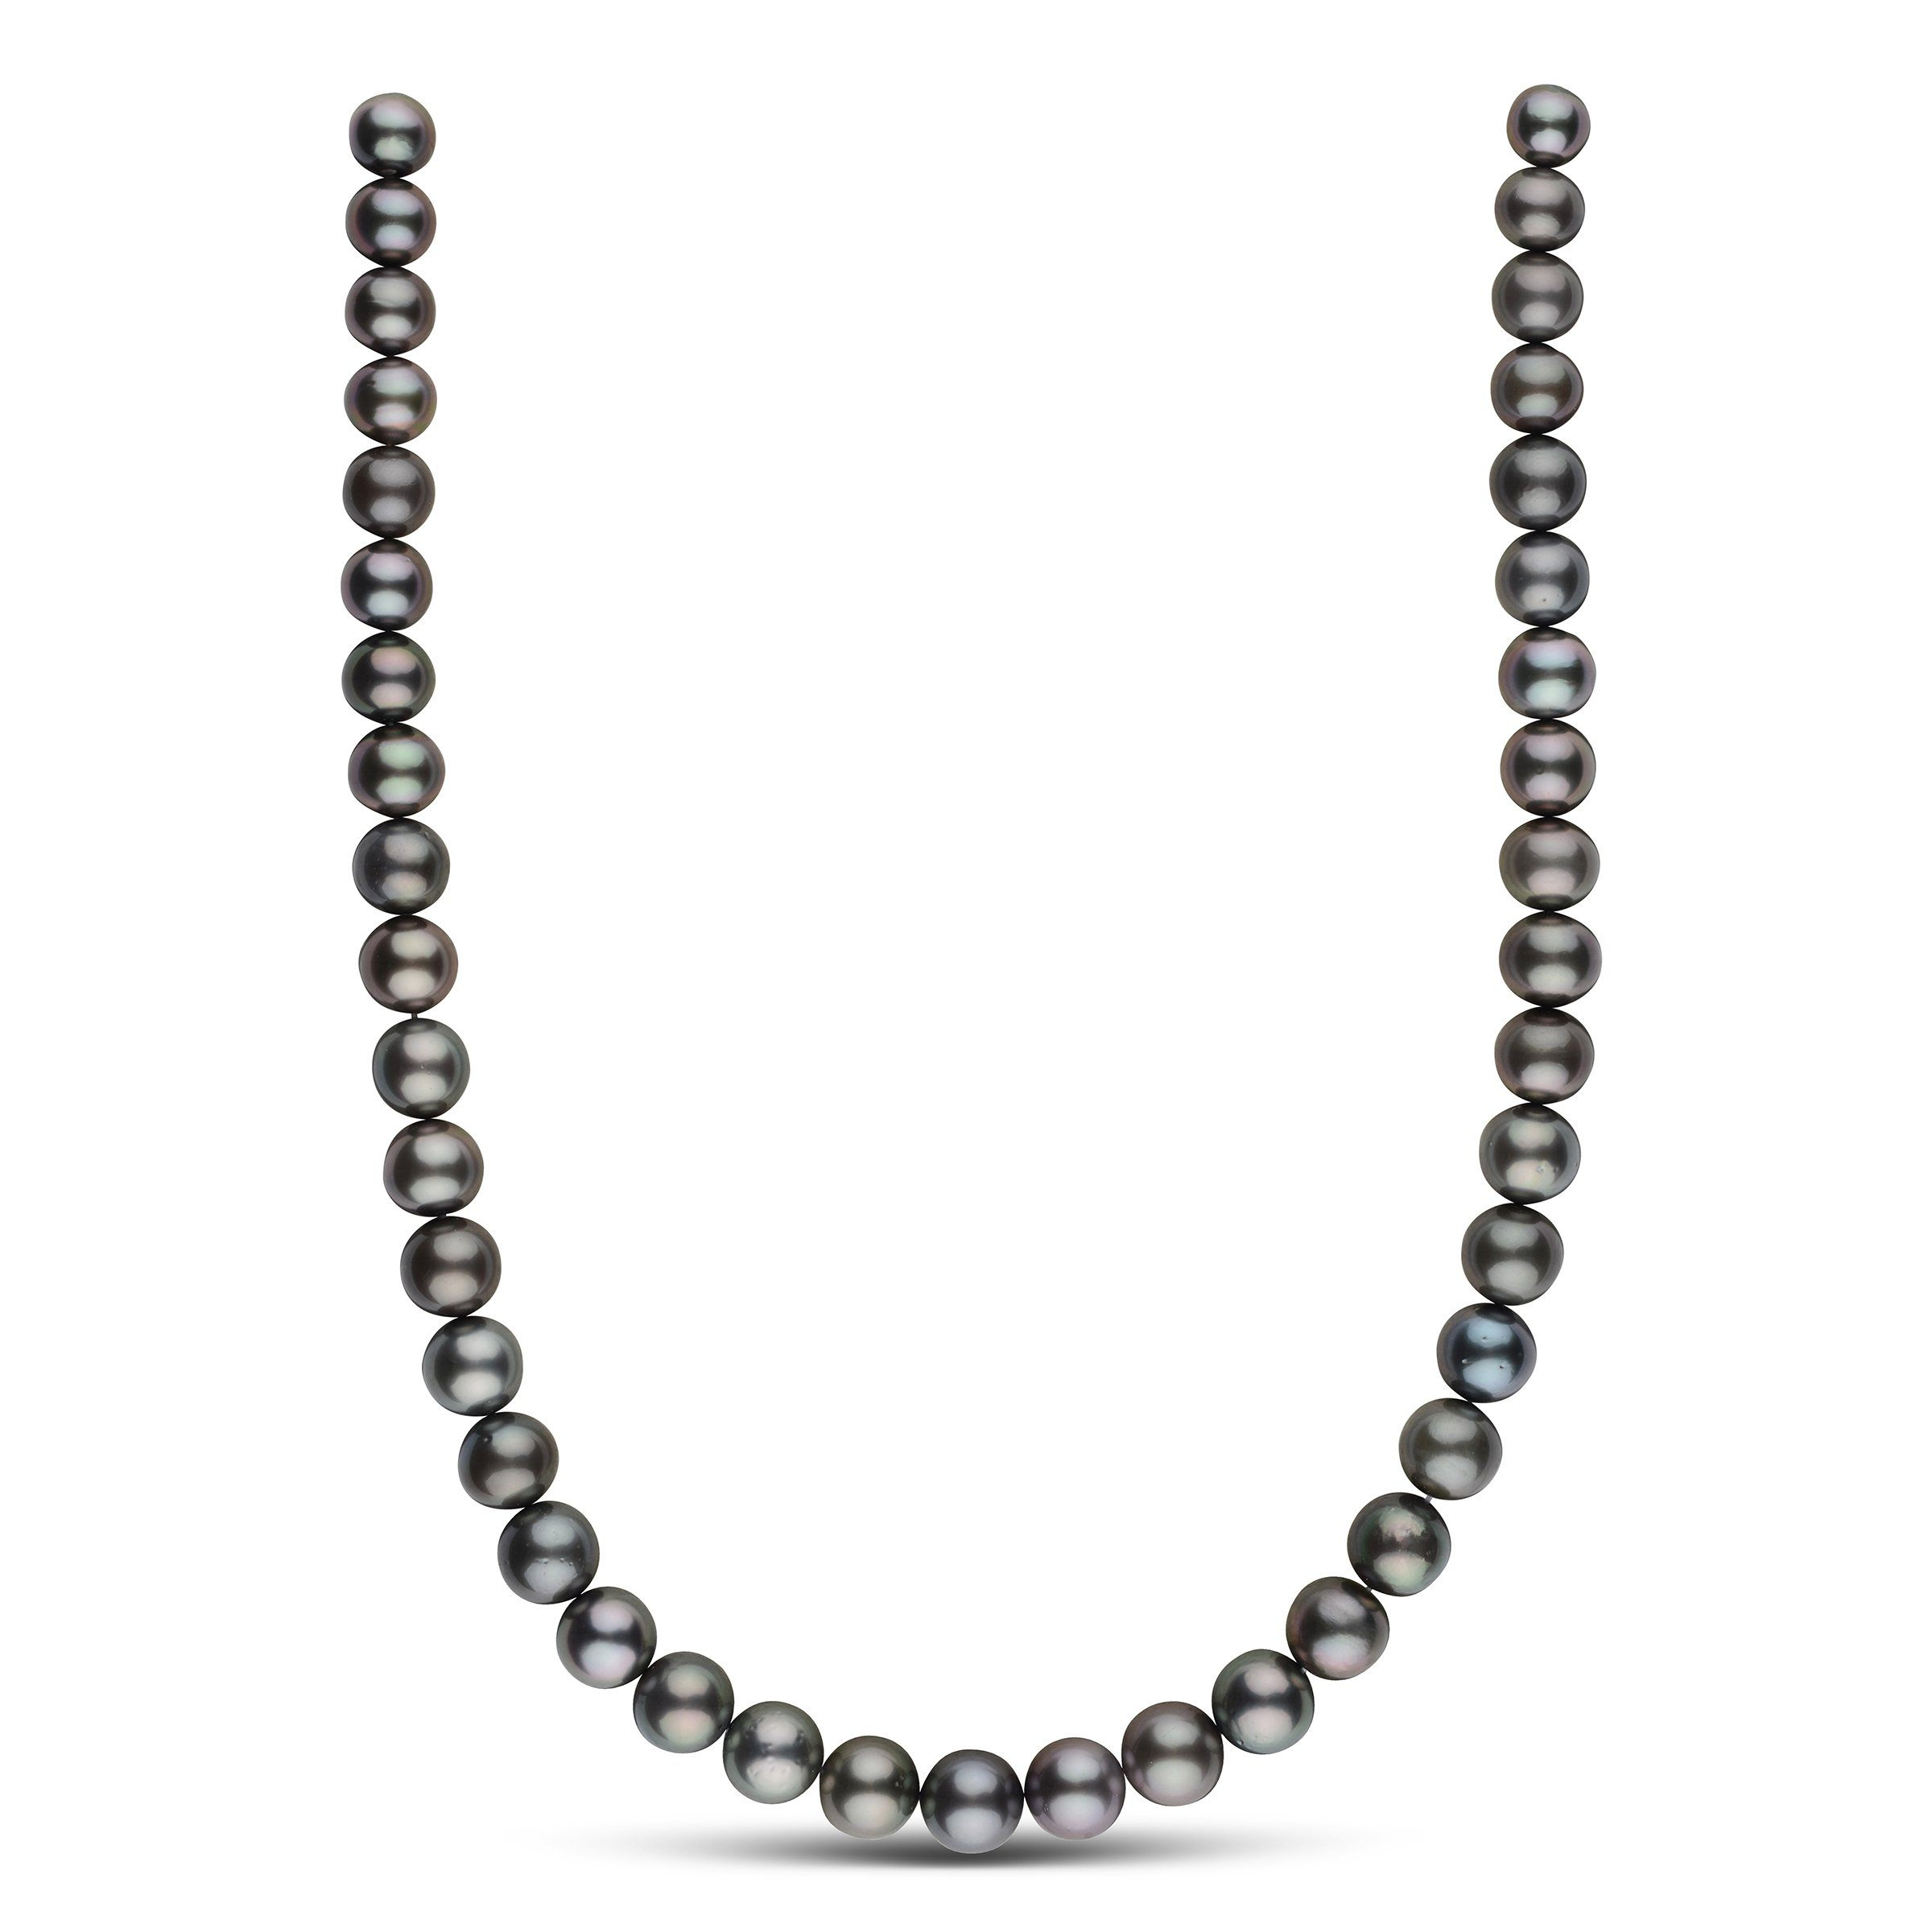 11.1-14.5 mm AA+ Round Tahitian Pearl Necklace